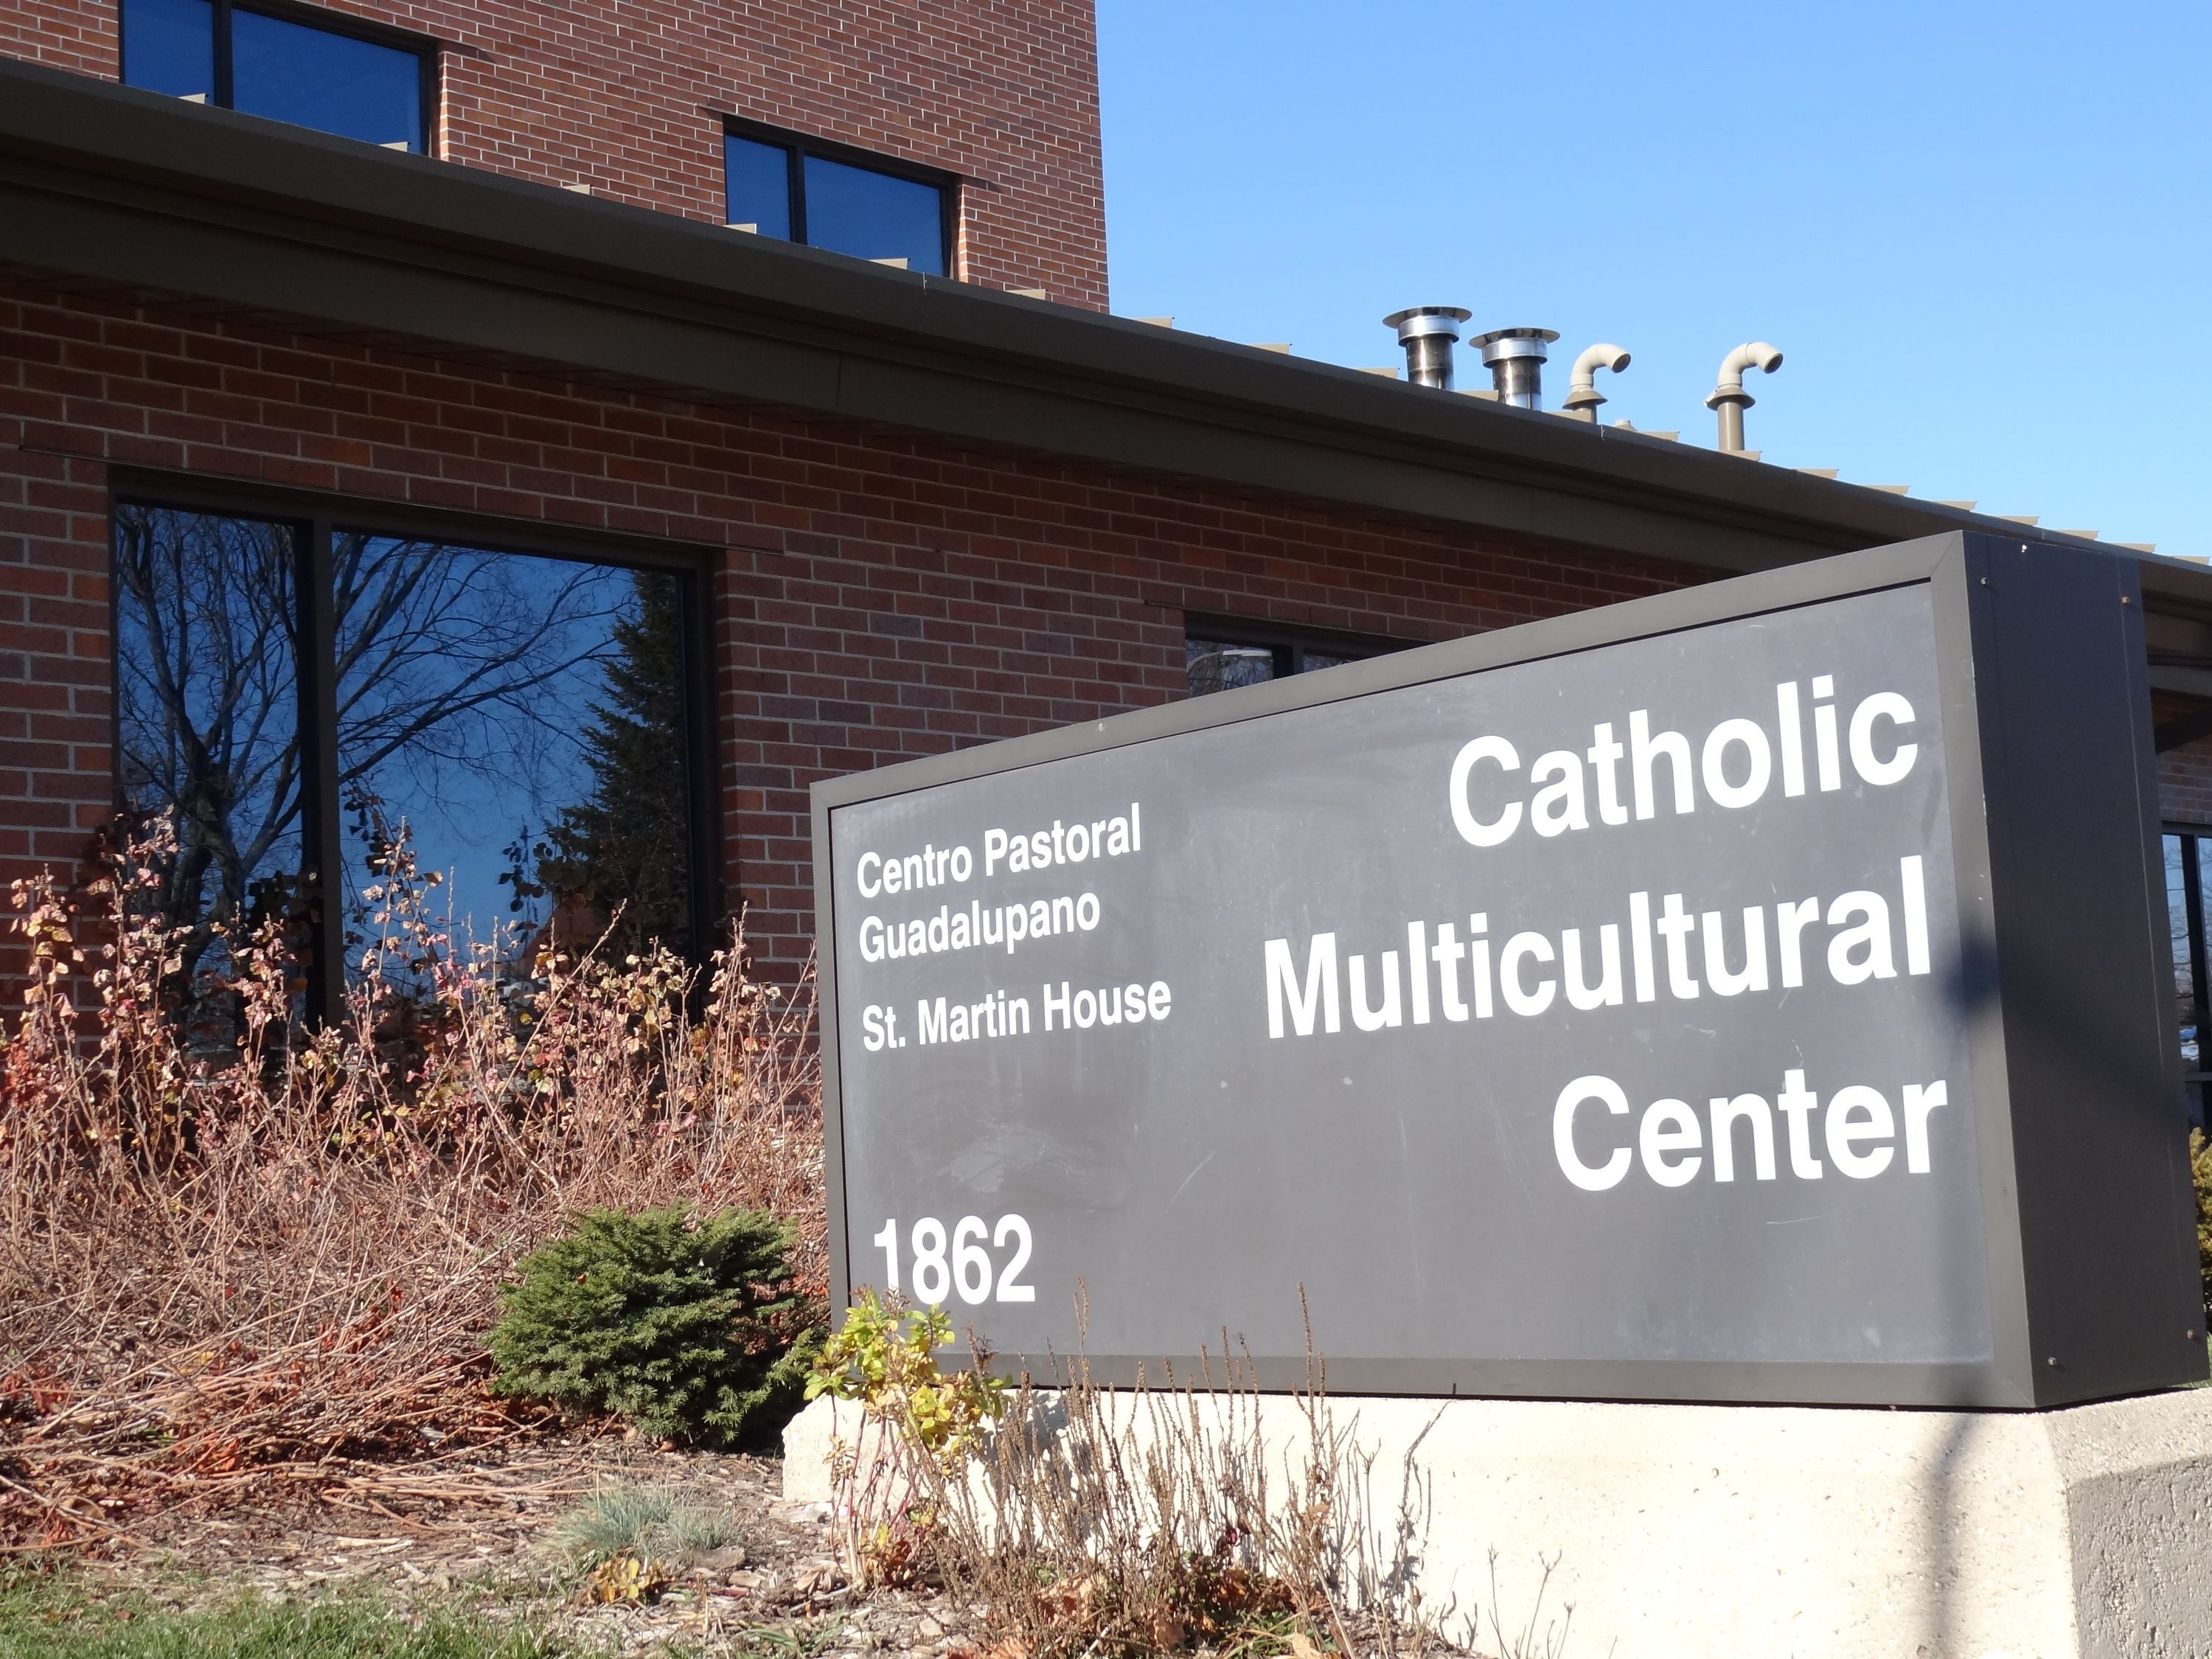 Catholic Multicultural Center